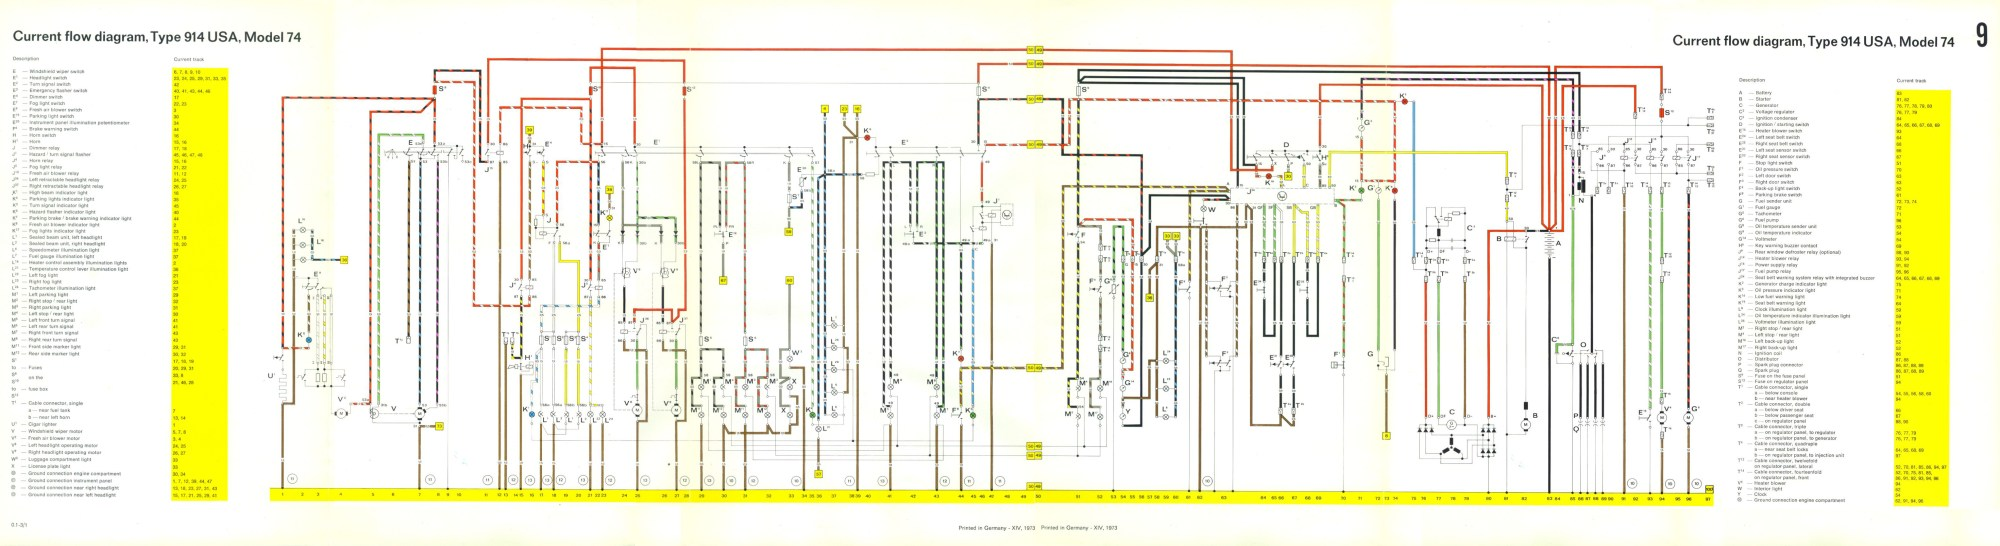 hight resolution of current flow electroclassic ev porsche 914 engine wiring diagram porsche 914 engine wiring diagram